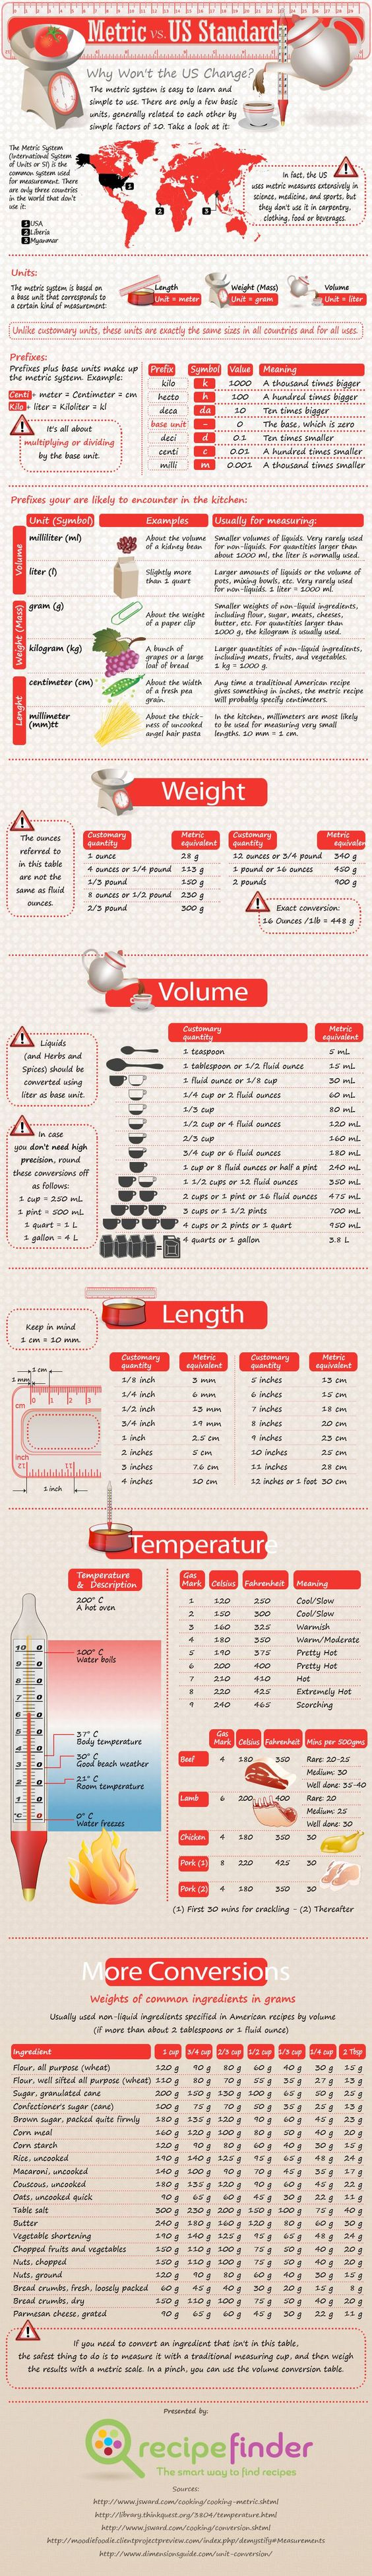 When it comes to measurement, the use of the Metric System and the U.S. Standard Measurement System has long been discussed. While a large majority of the world's countries use the Metric System, there are still a handful which adhere to the U.S. Standard. These differences can indeed result in a disaster in the kitchen if you do not know how to convert the measurements!